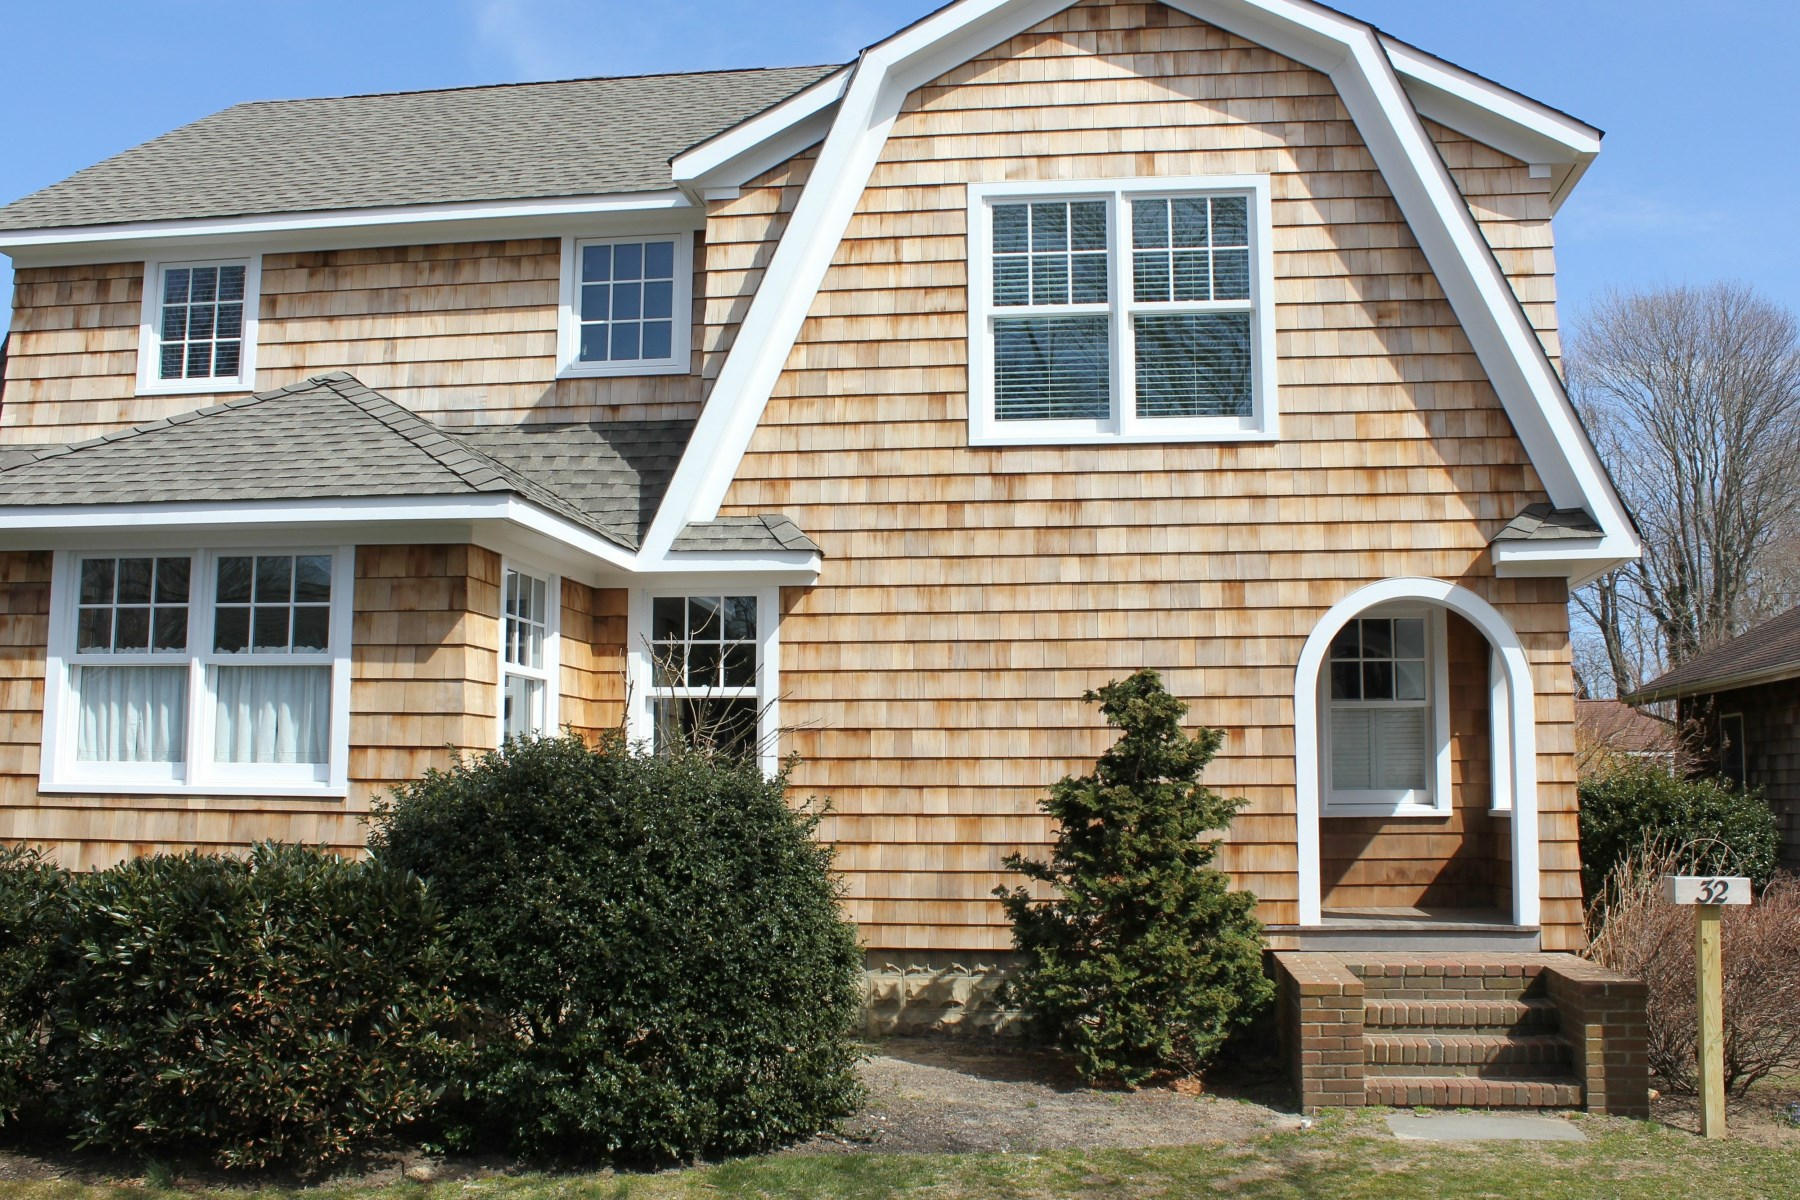 Single Family Home for Rent at Village Gem East Hampton, New York 11937 United States